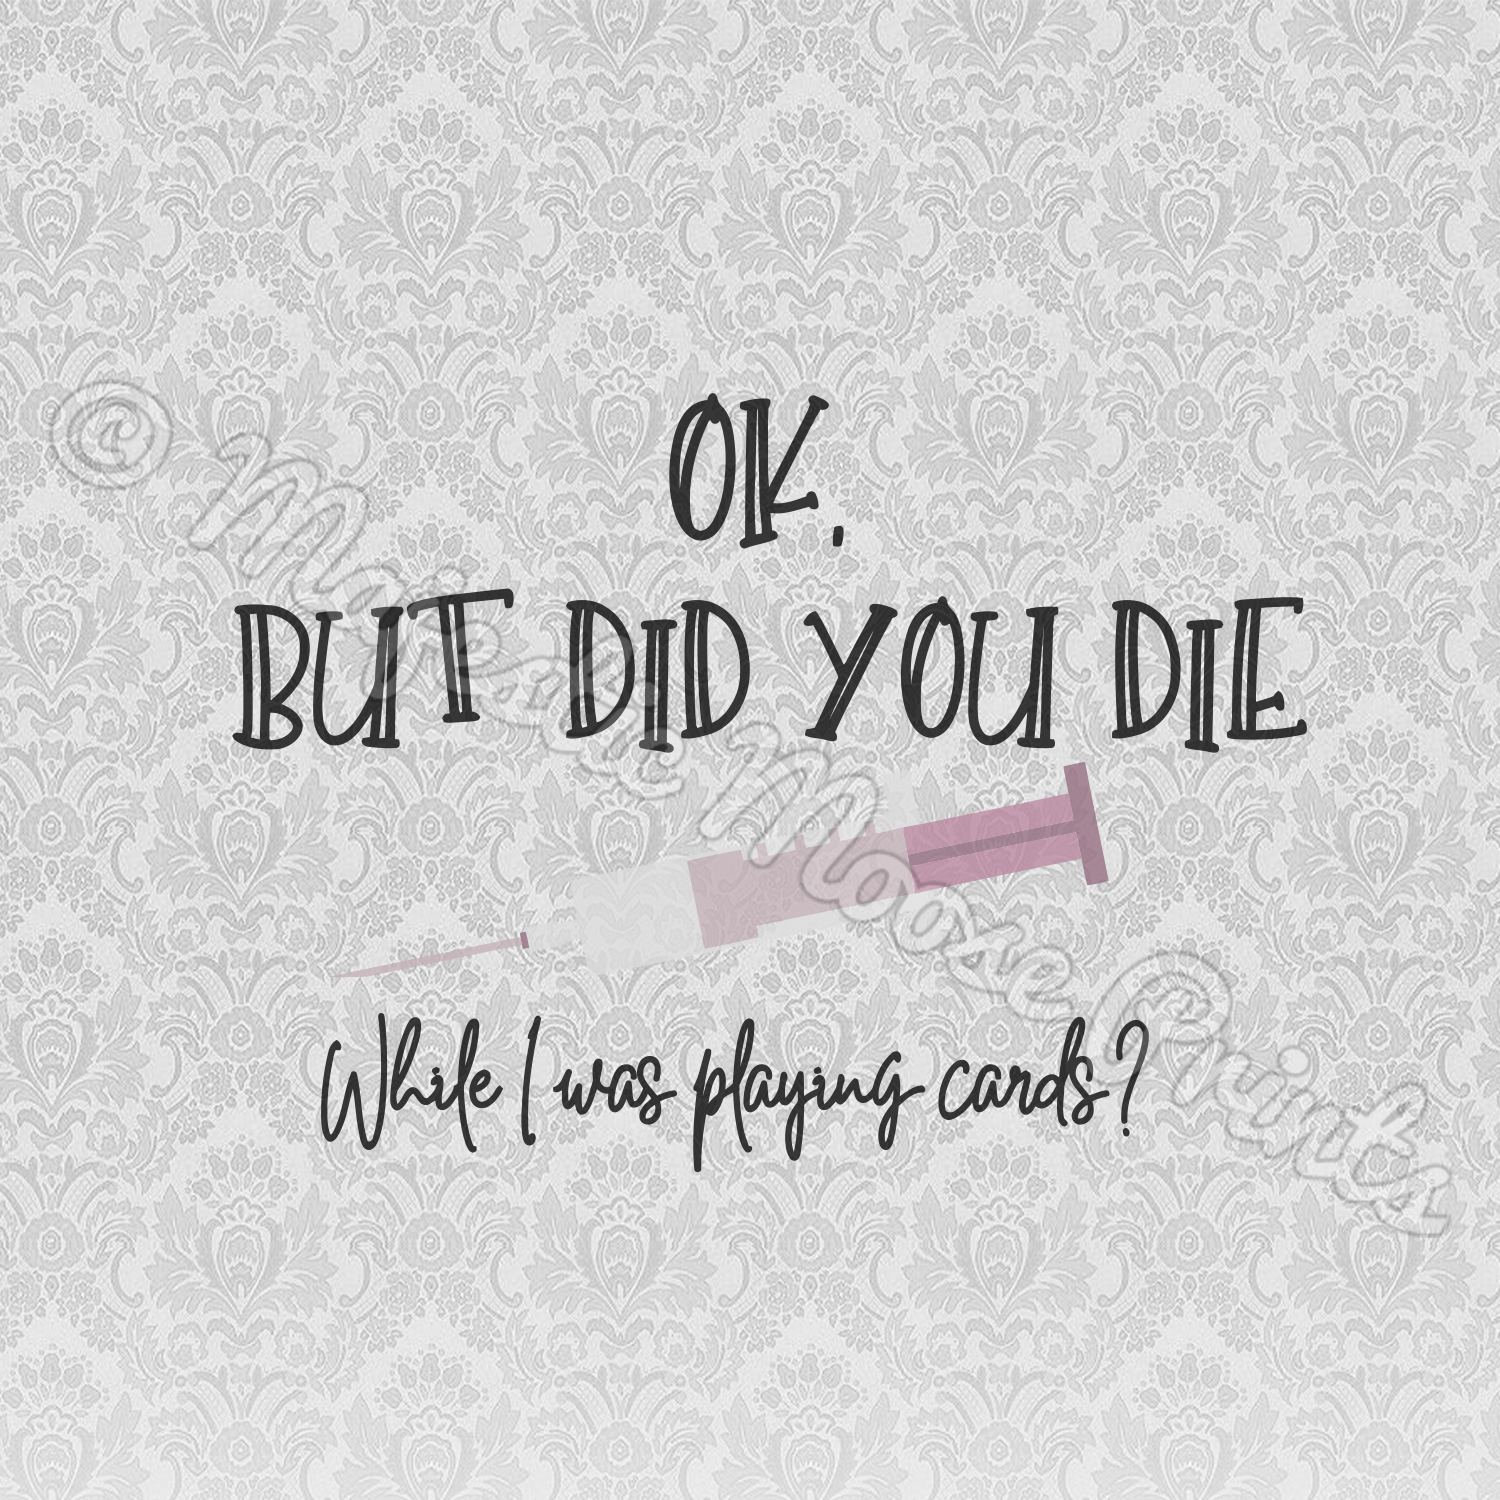 But Did You Die Svg Funny Nurse Quote Funny Nurse Quotes Nurse Quotes Nurse Humor